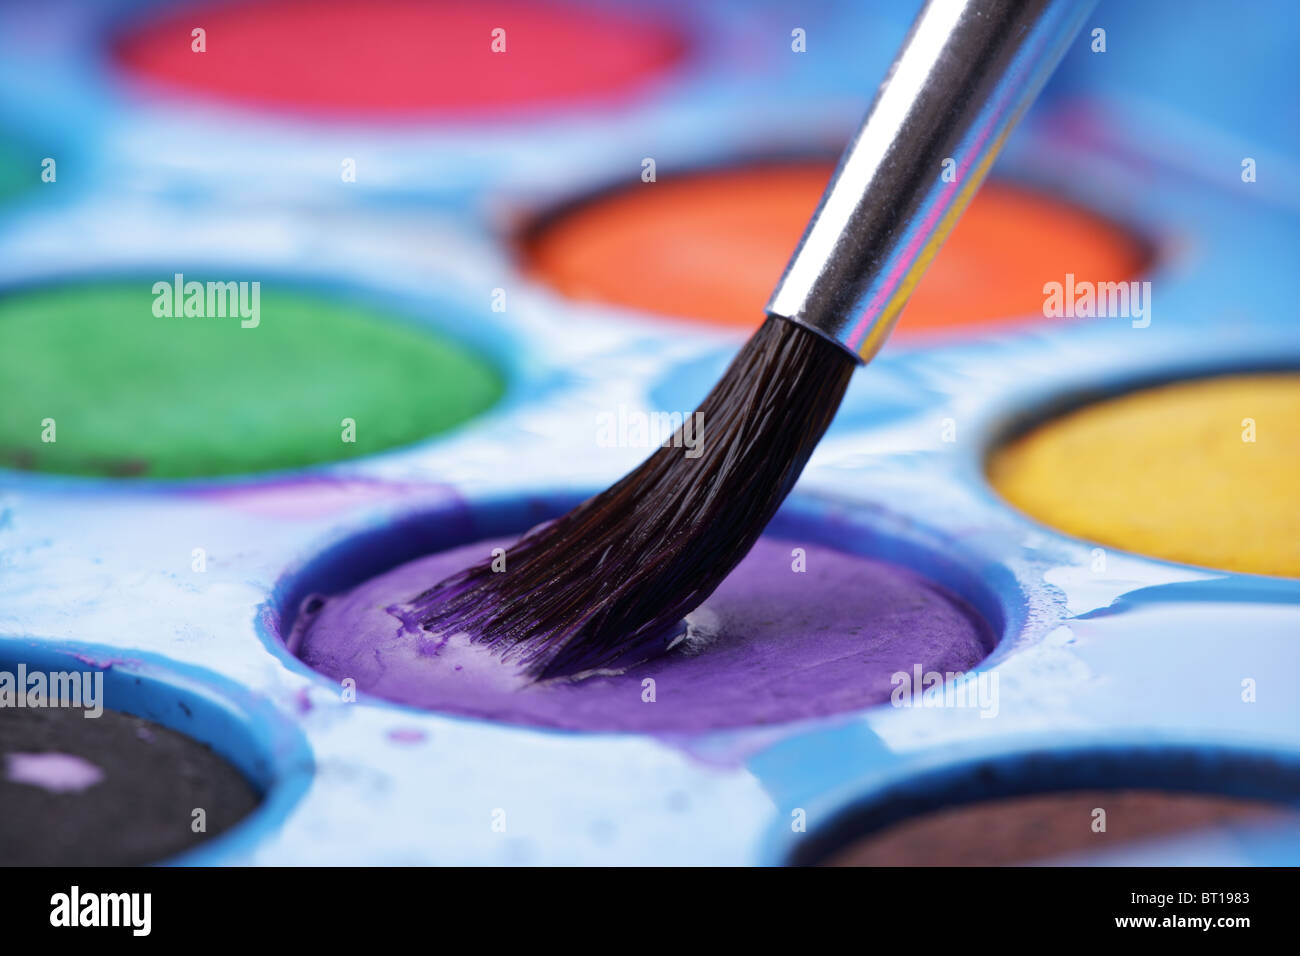 Artist's watercolor palette with brush - Stock Image